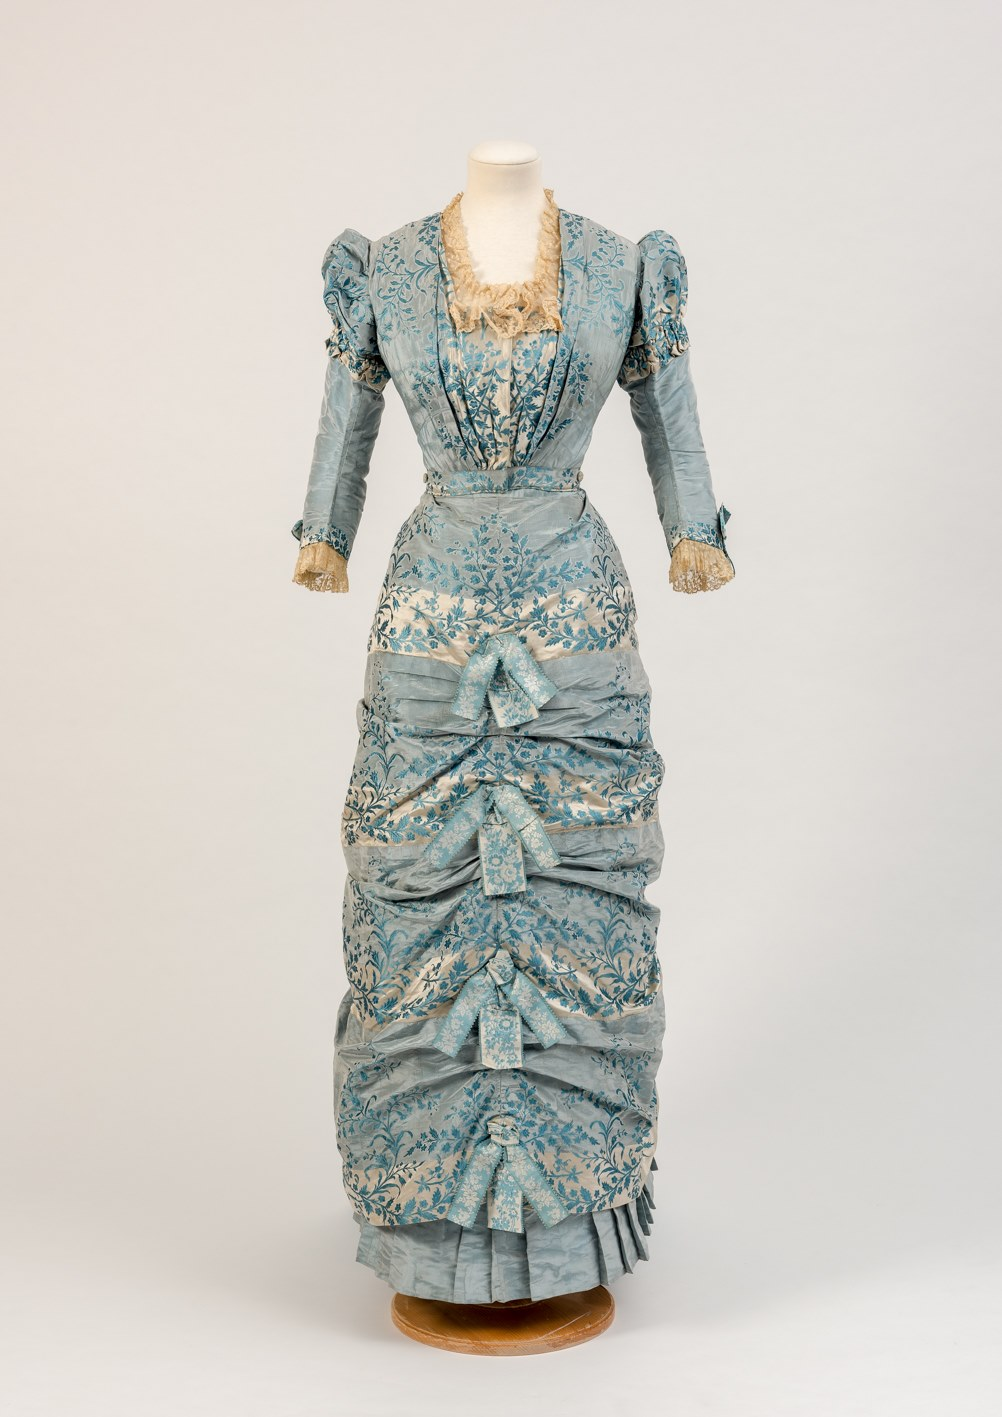 Dress in two parts, 1880s, Fashion Museum Bath